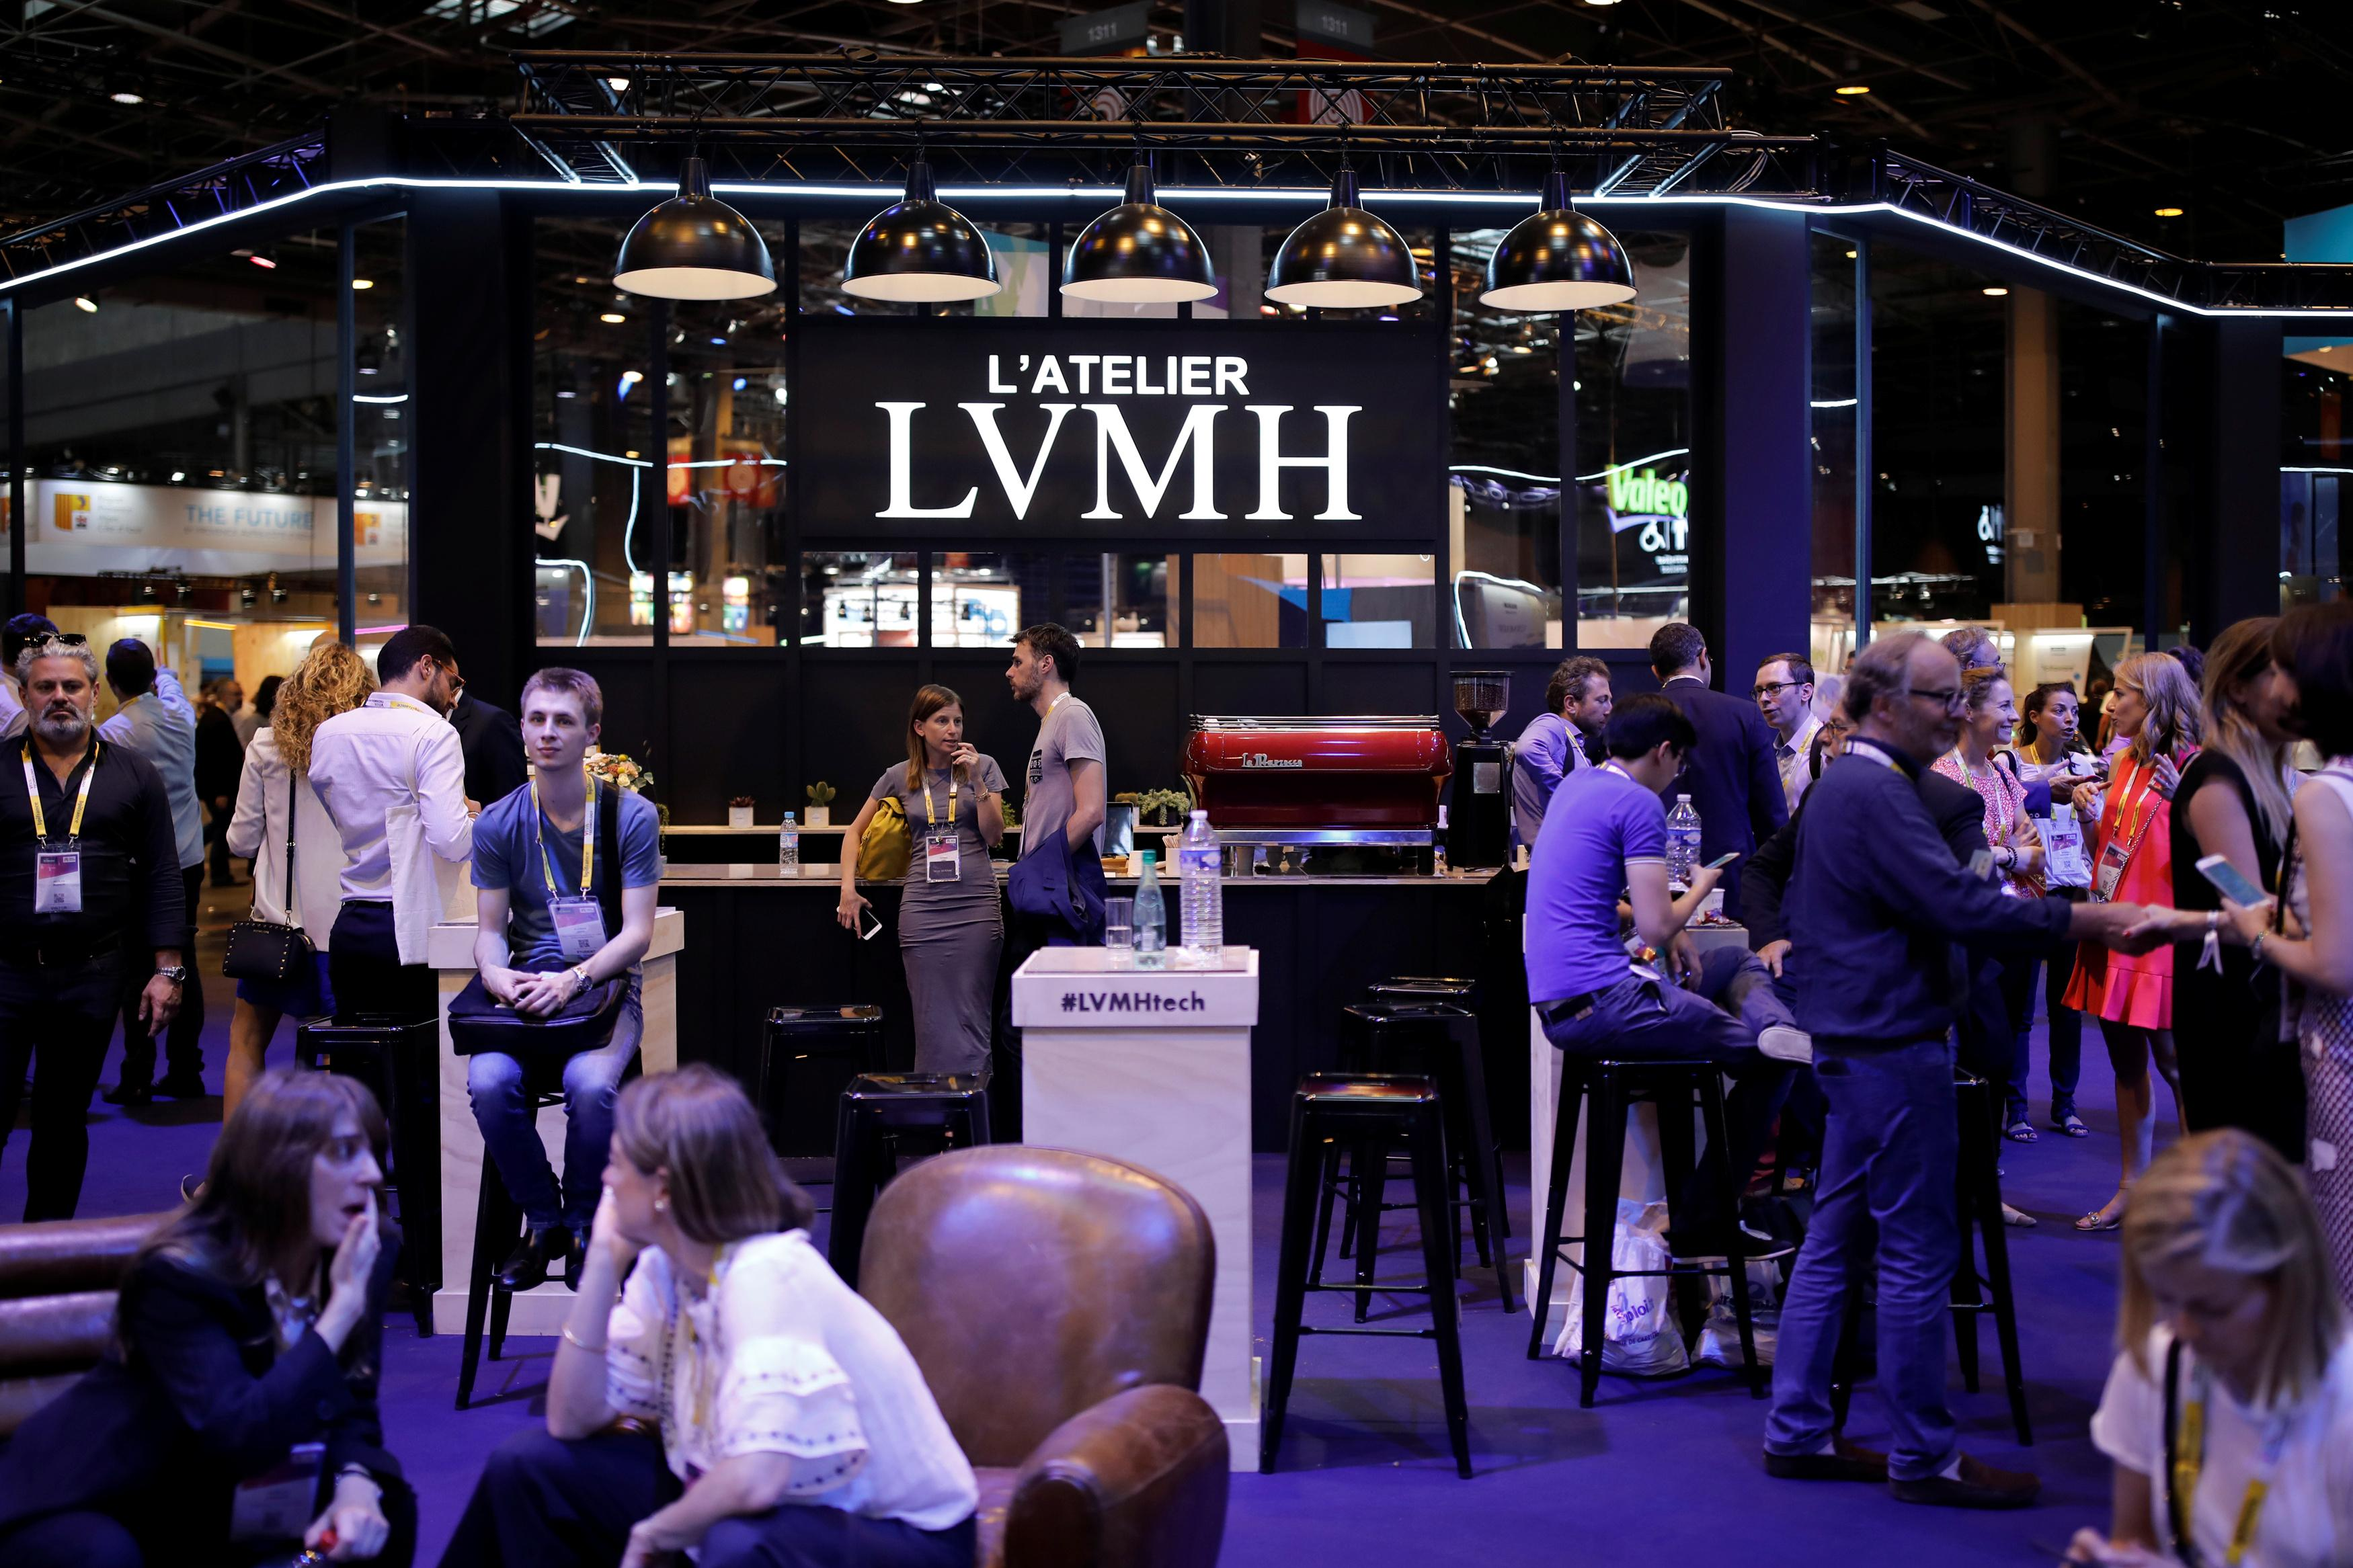 Vuitton propels LVMH growth in boost for luxury sector